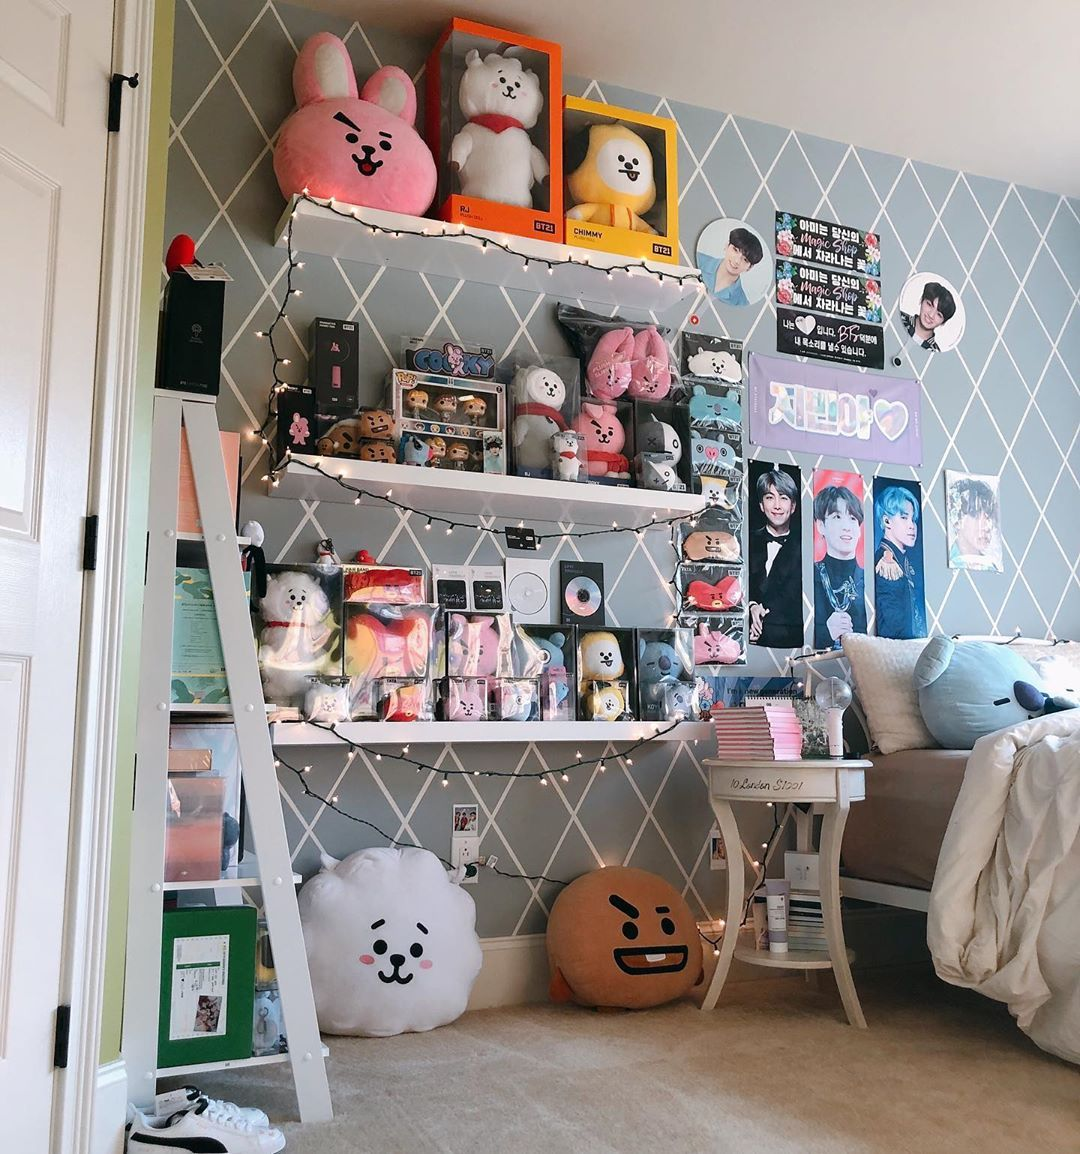 21b Begenme 87 Yorum Instagram Da H S Bts Collection Jungshelf 2 Bts Paved Dee Way Don T Repost Thank Army Room Decor Cute Room Decor Army Decor